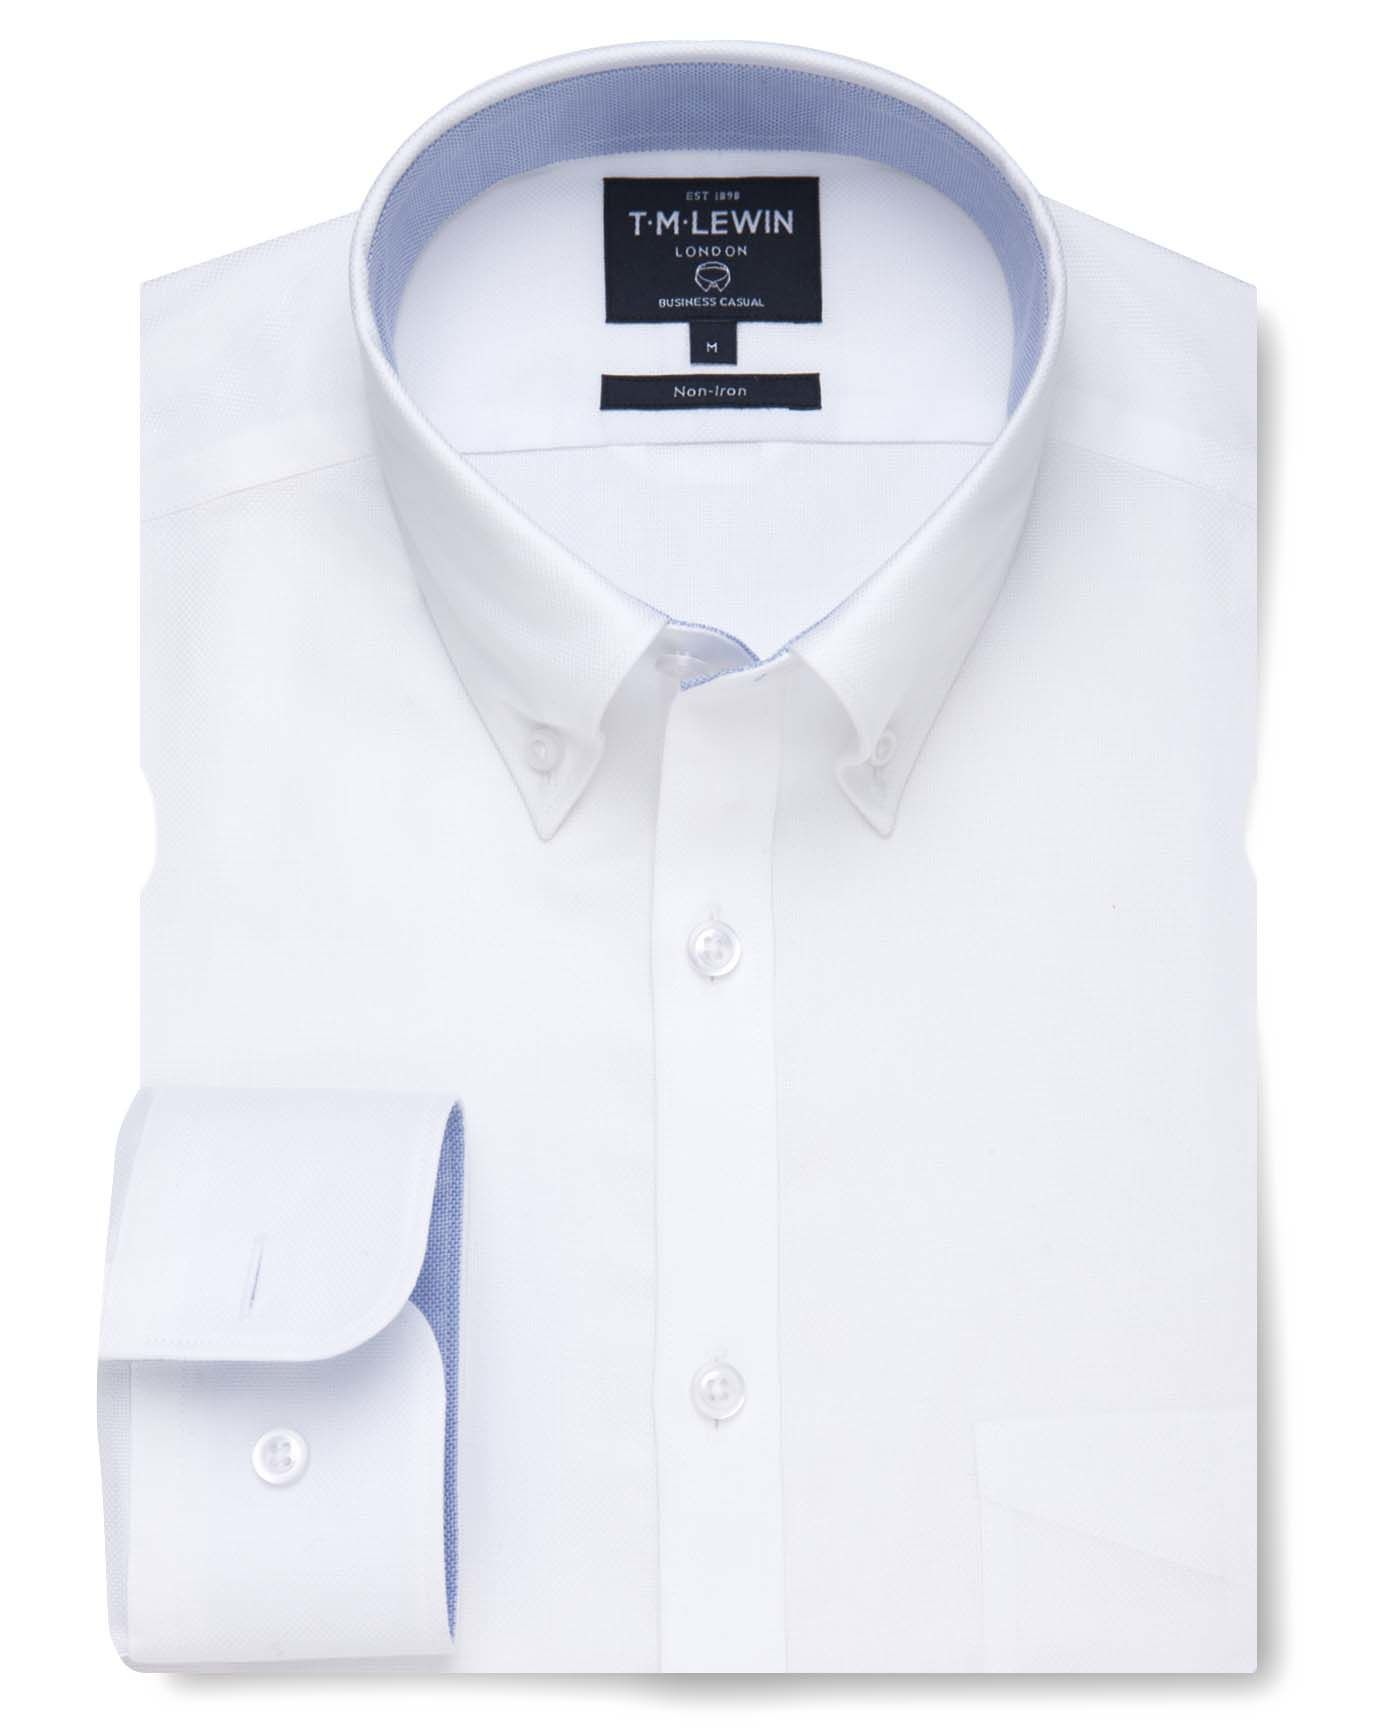 T.M.Lewin Non-Iron White Royal Oxford Casual Slim Fit Shirt